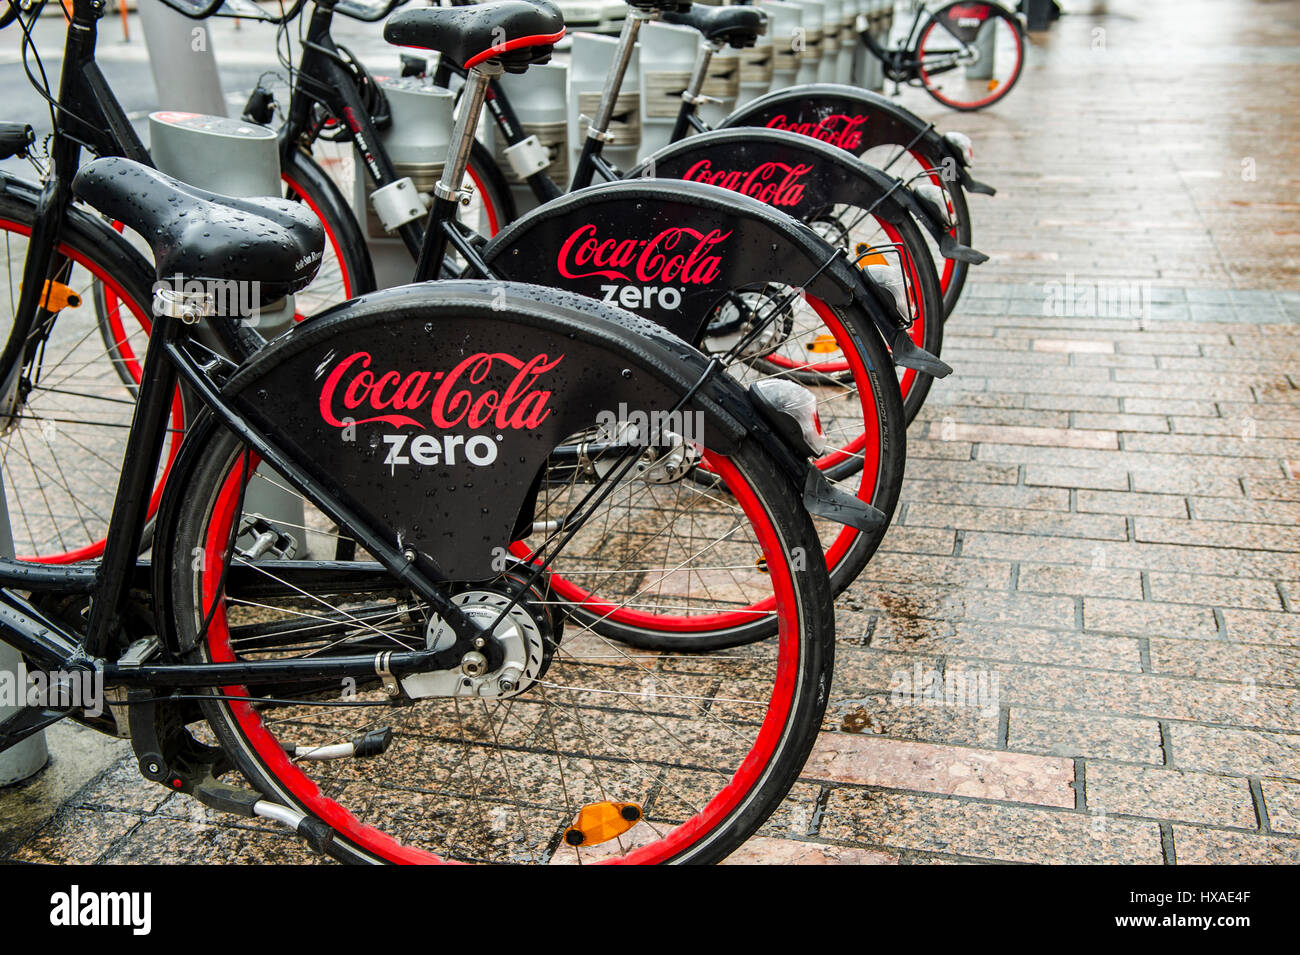 coca-cola-zero-bicycles-in-a-row-in-a-docking-station-as-part-of-the-HXAE4F.jpg